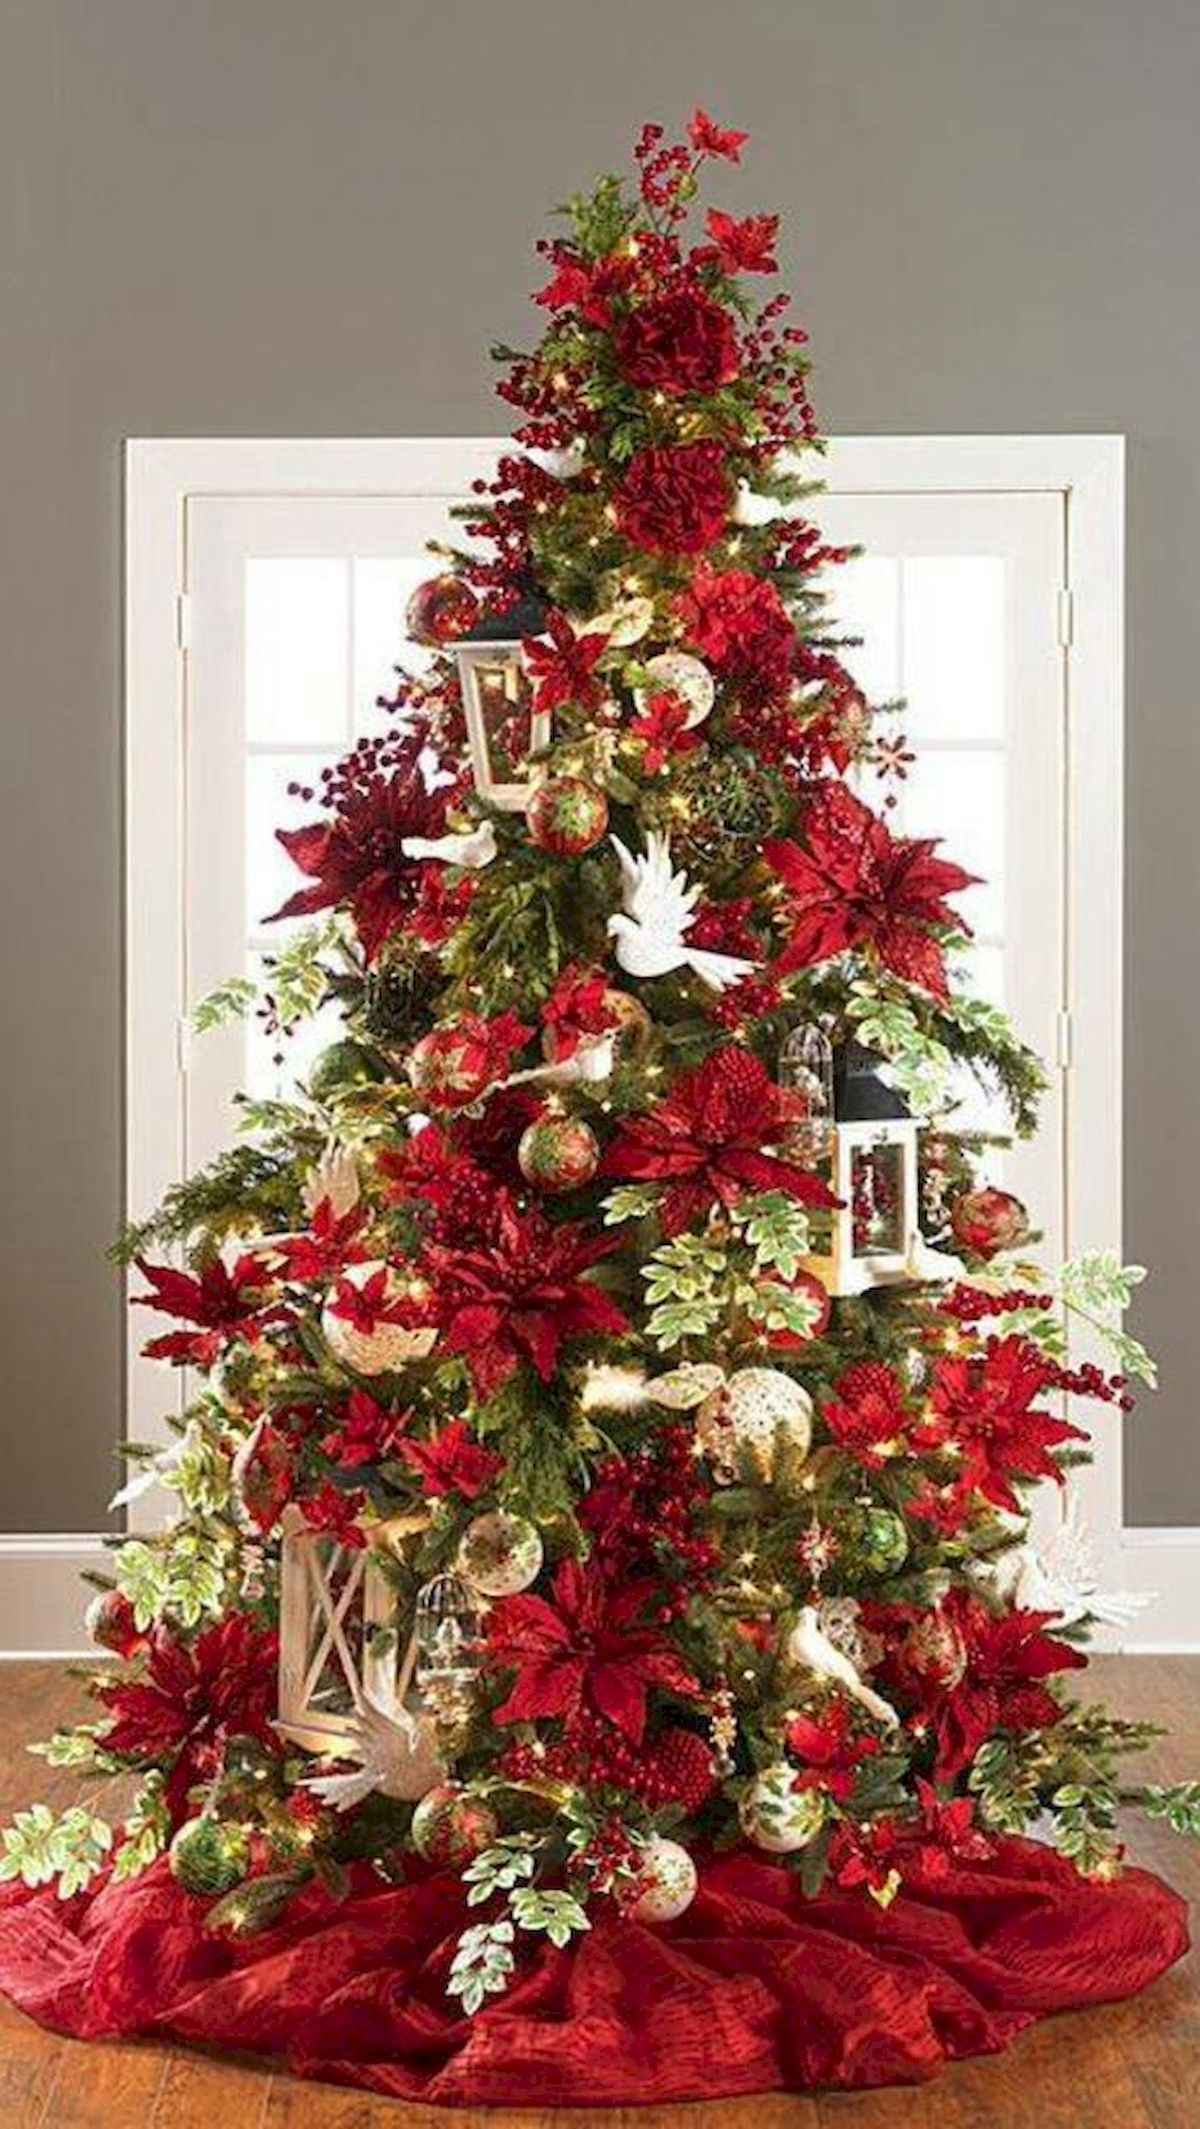 60 awesome christmas tree decorations ideas (2)